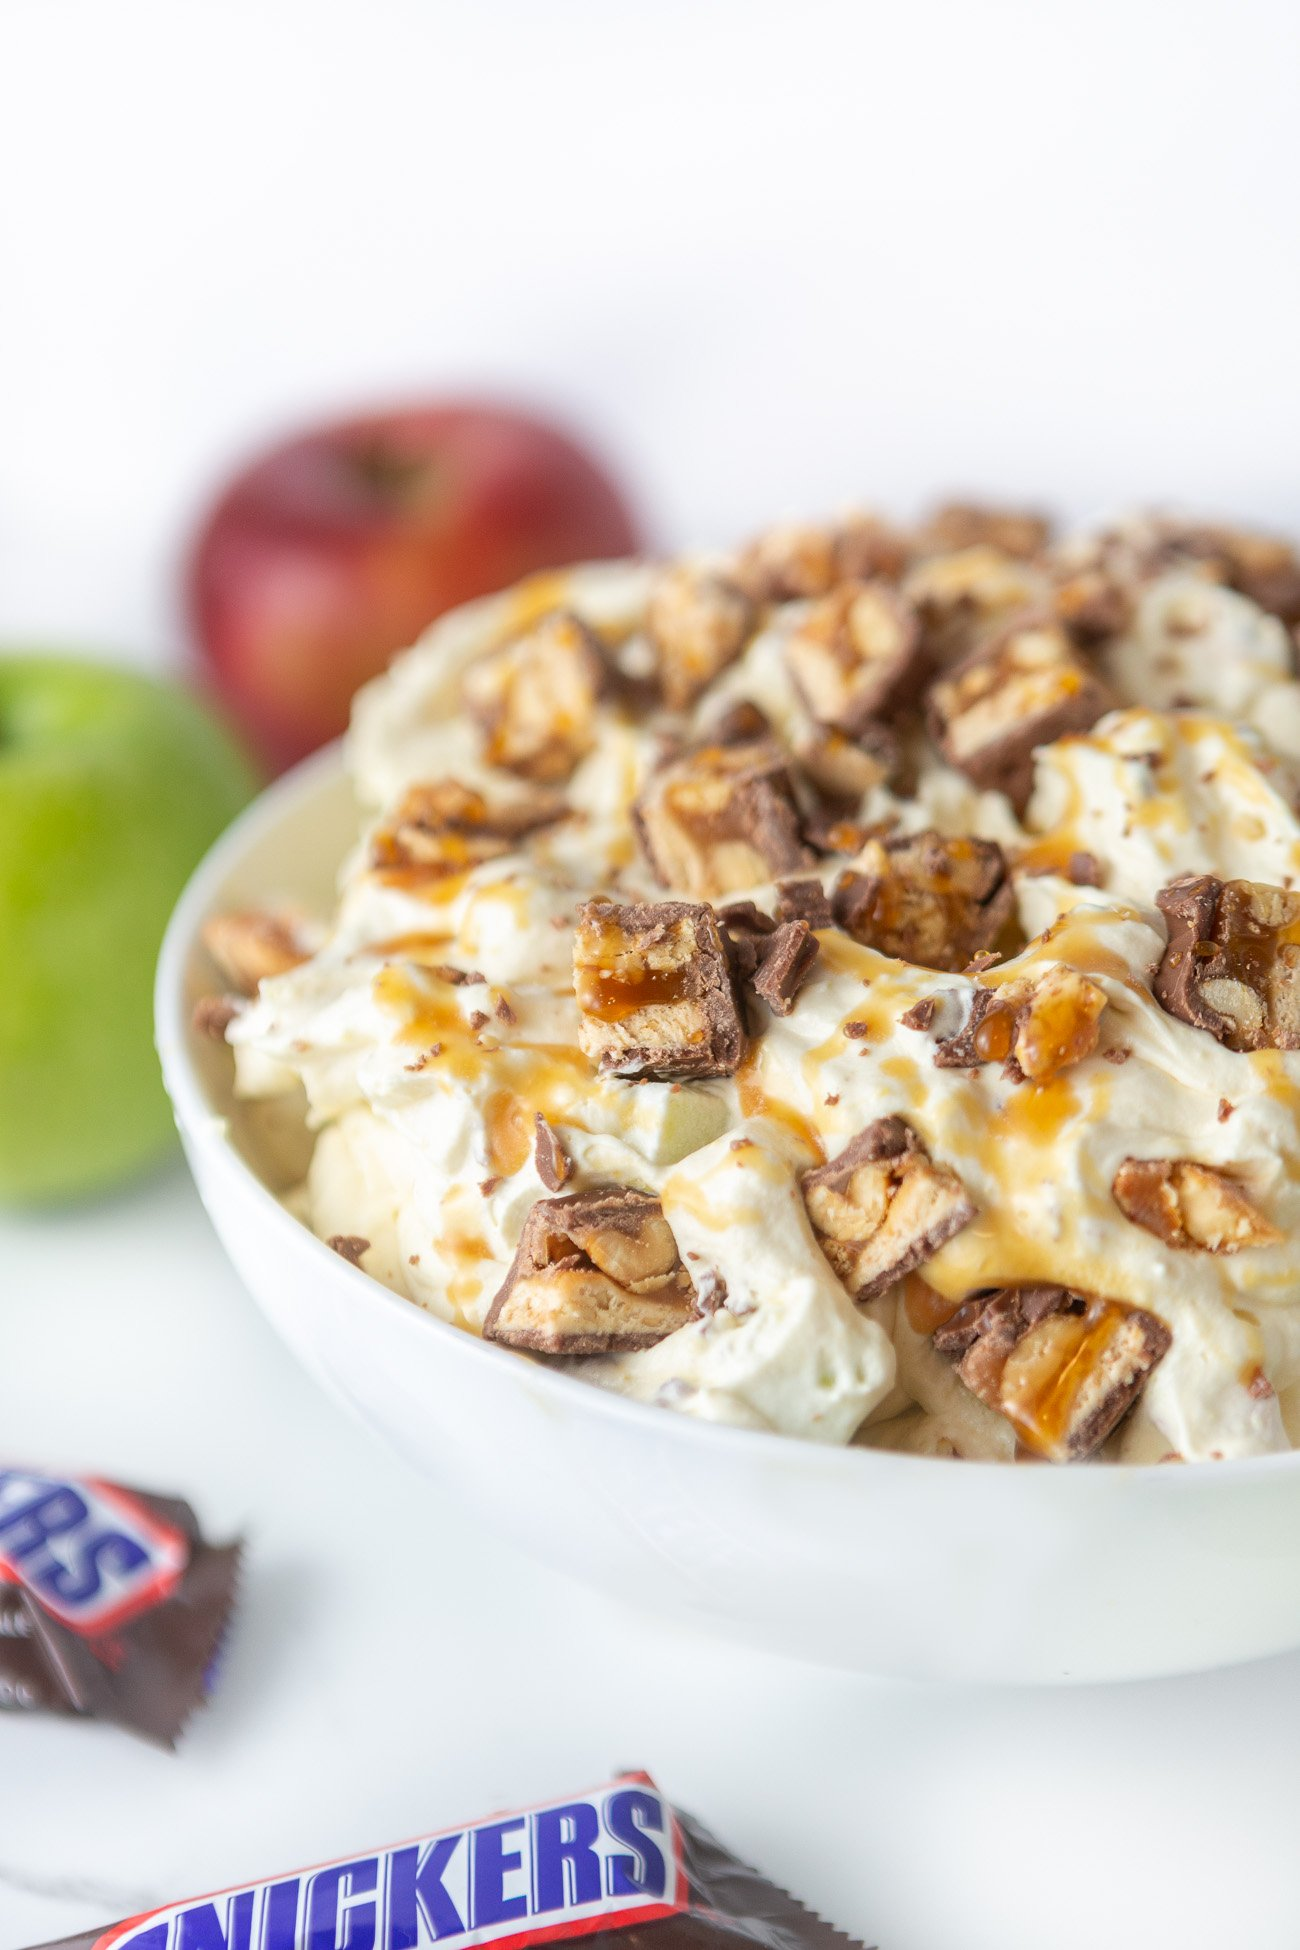 Bowl of creamy apple snickers salad dessert